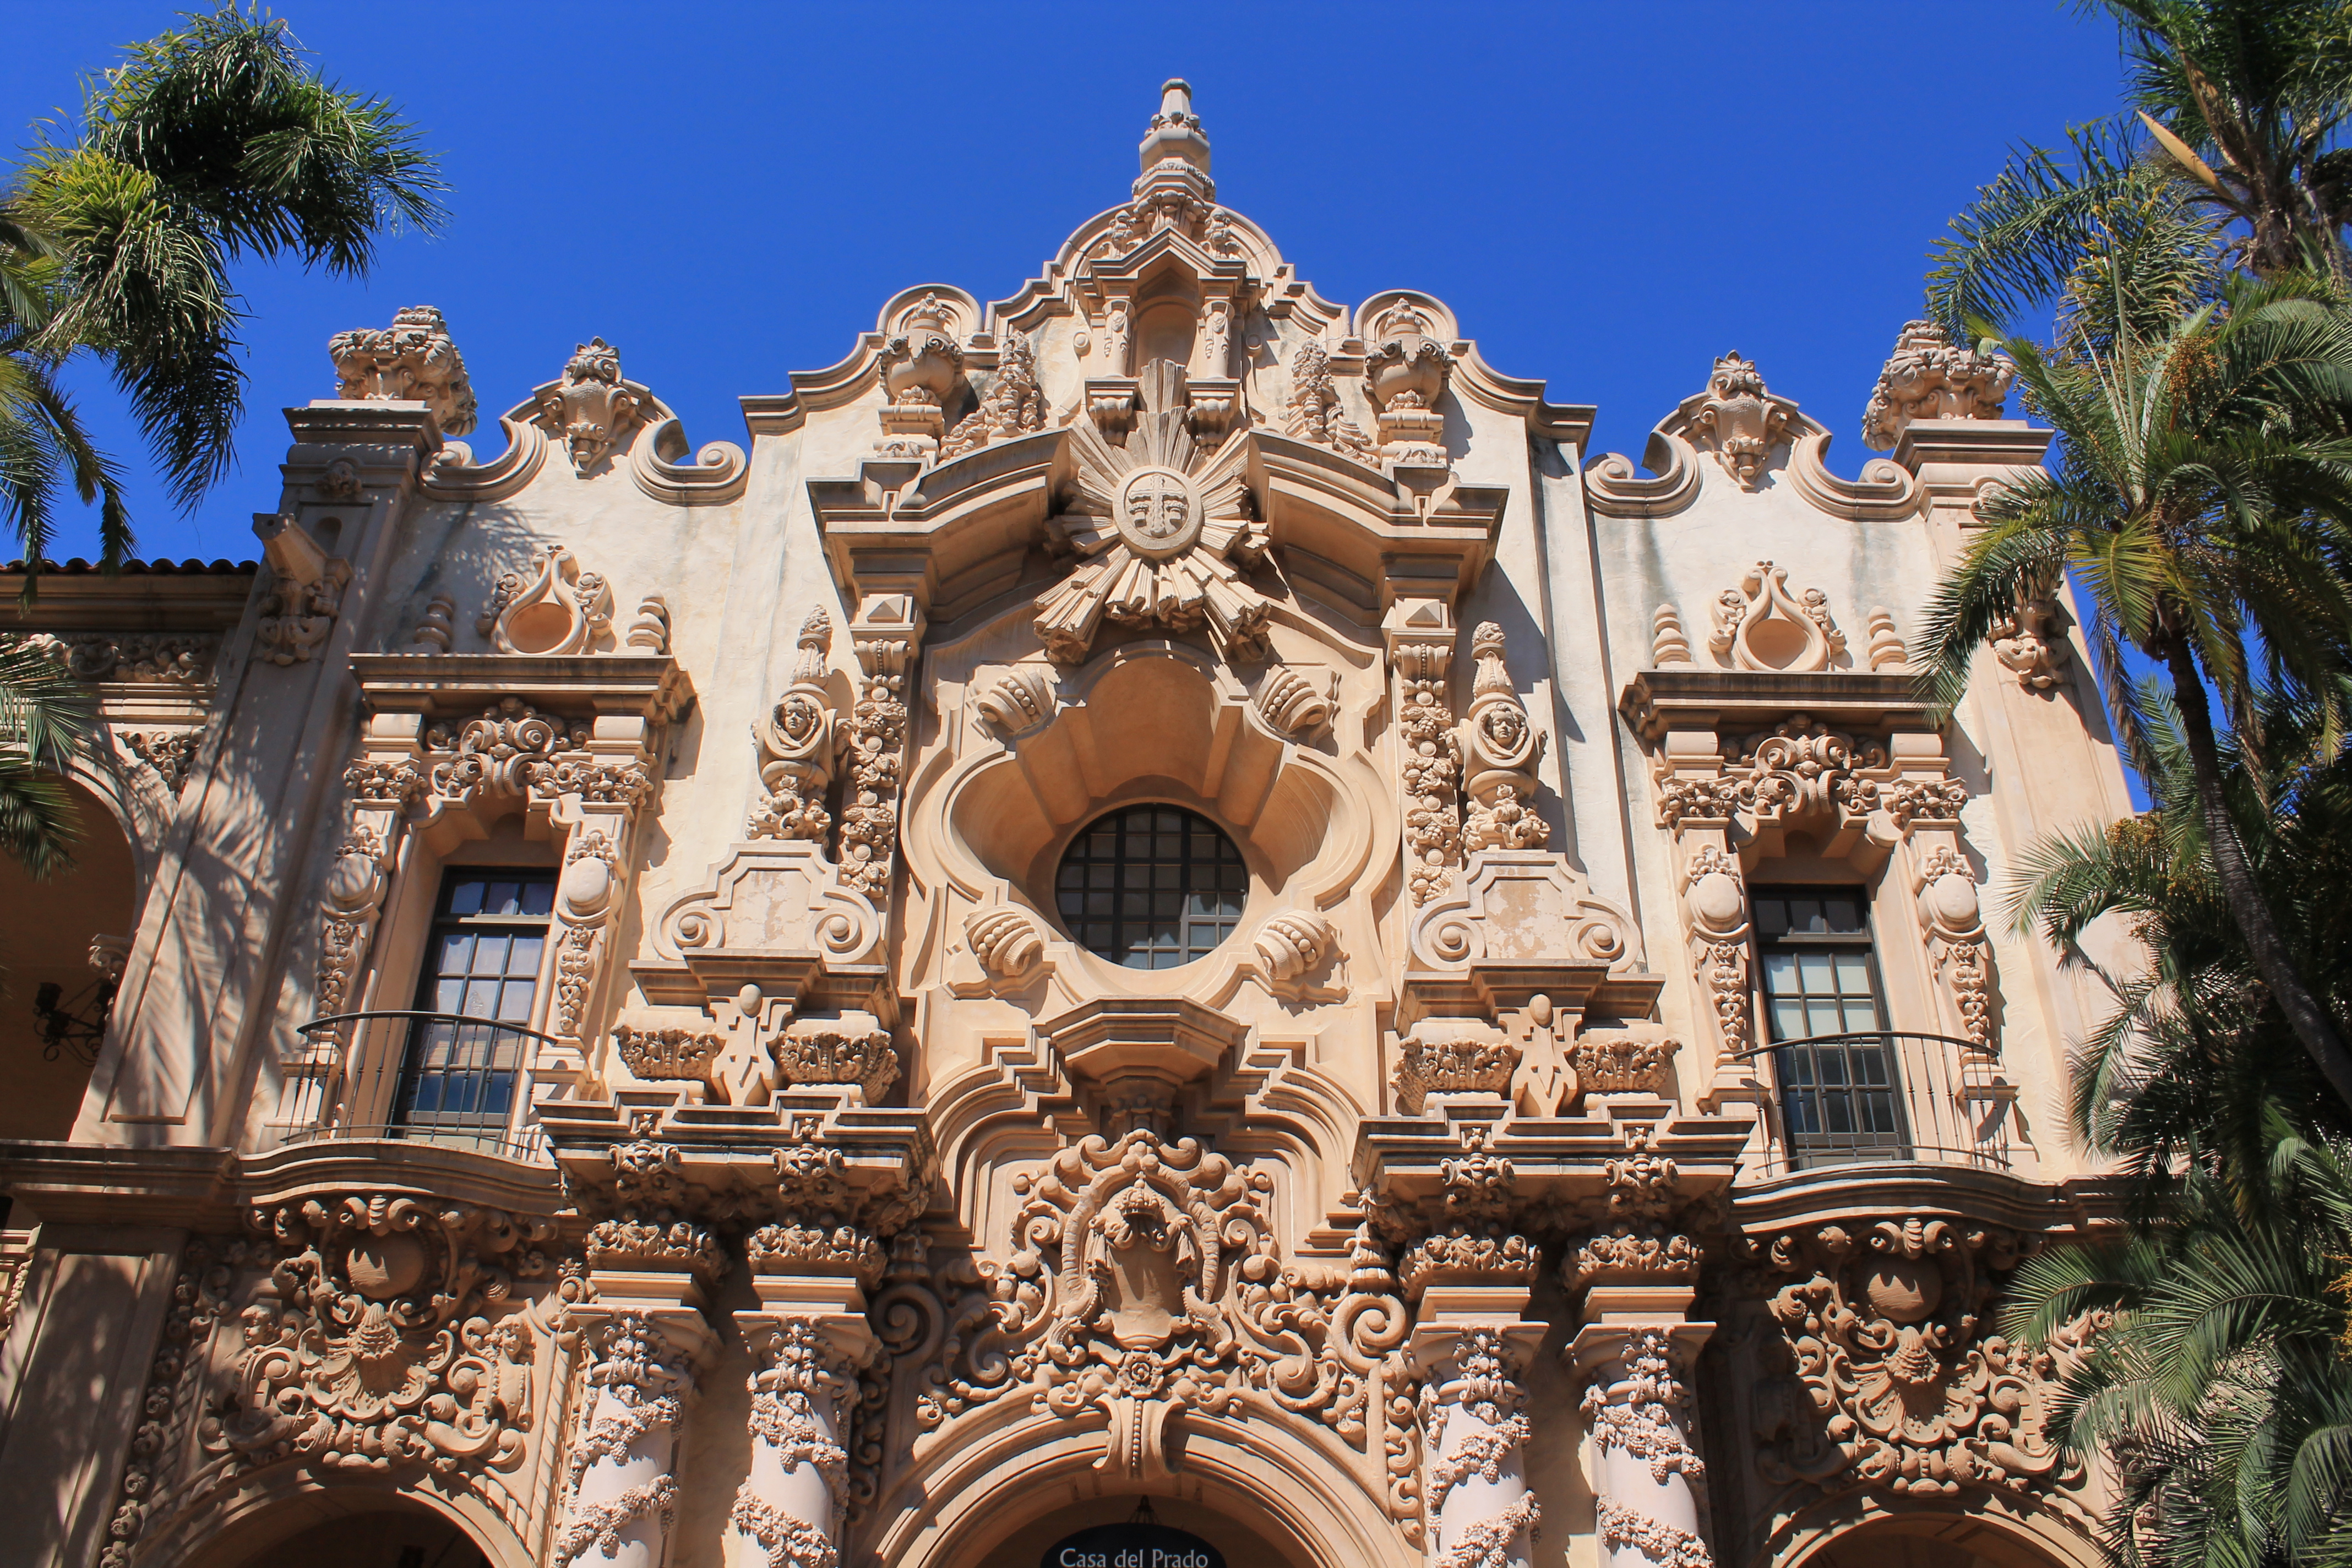 Picture Tour of the San Diego Balboa Park One Cool Thing Every Weekend